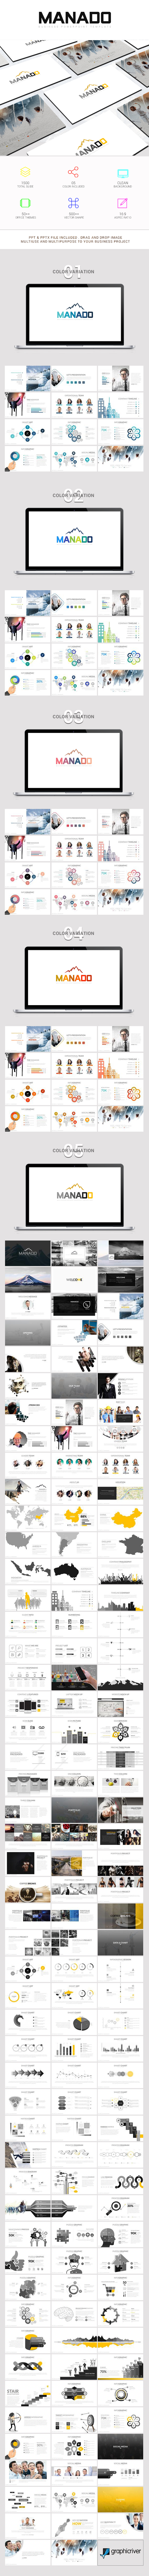 Manado Powerpoint Template - Business PowerPoint Templates